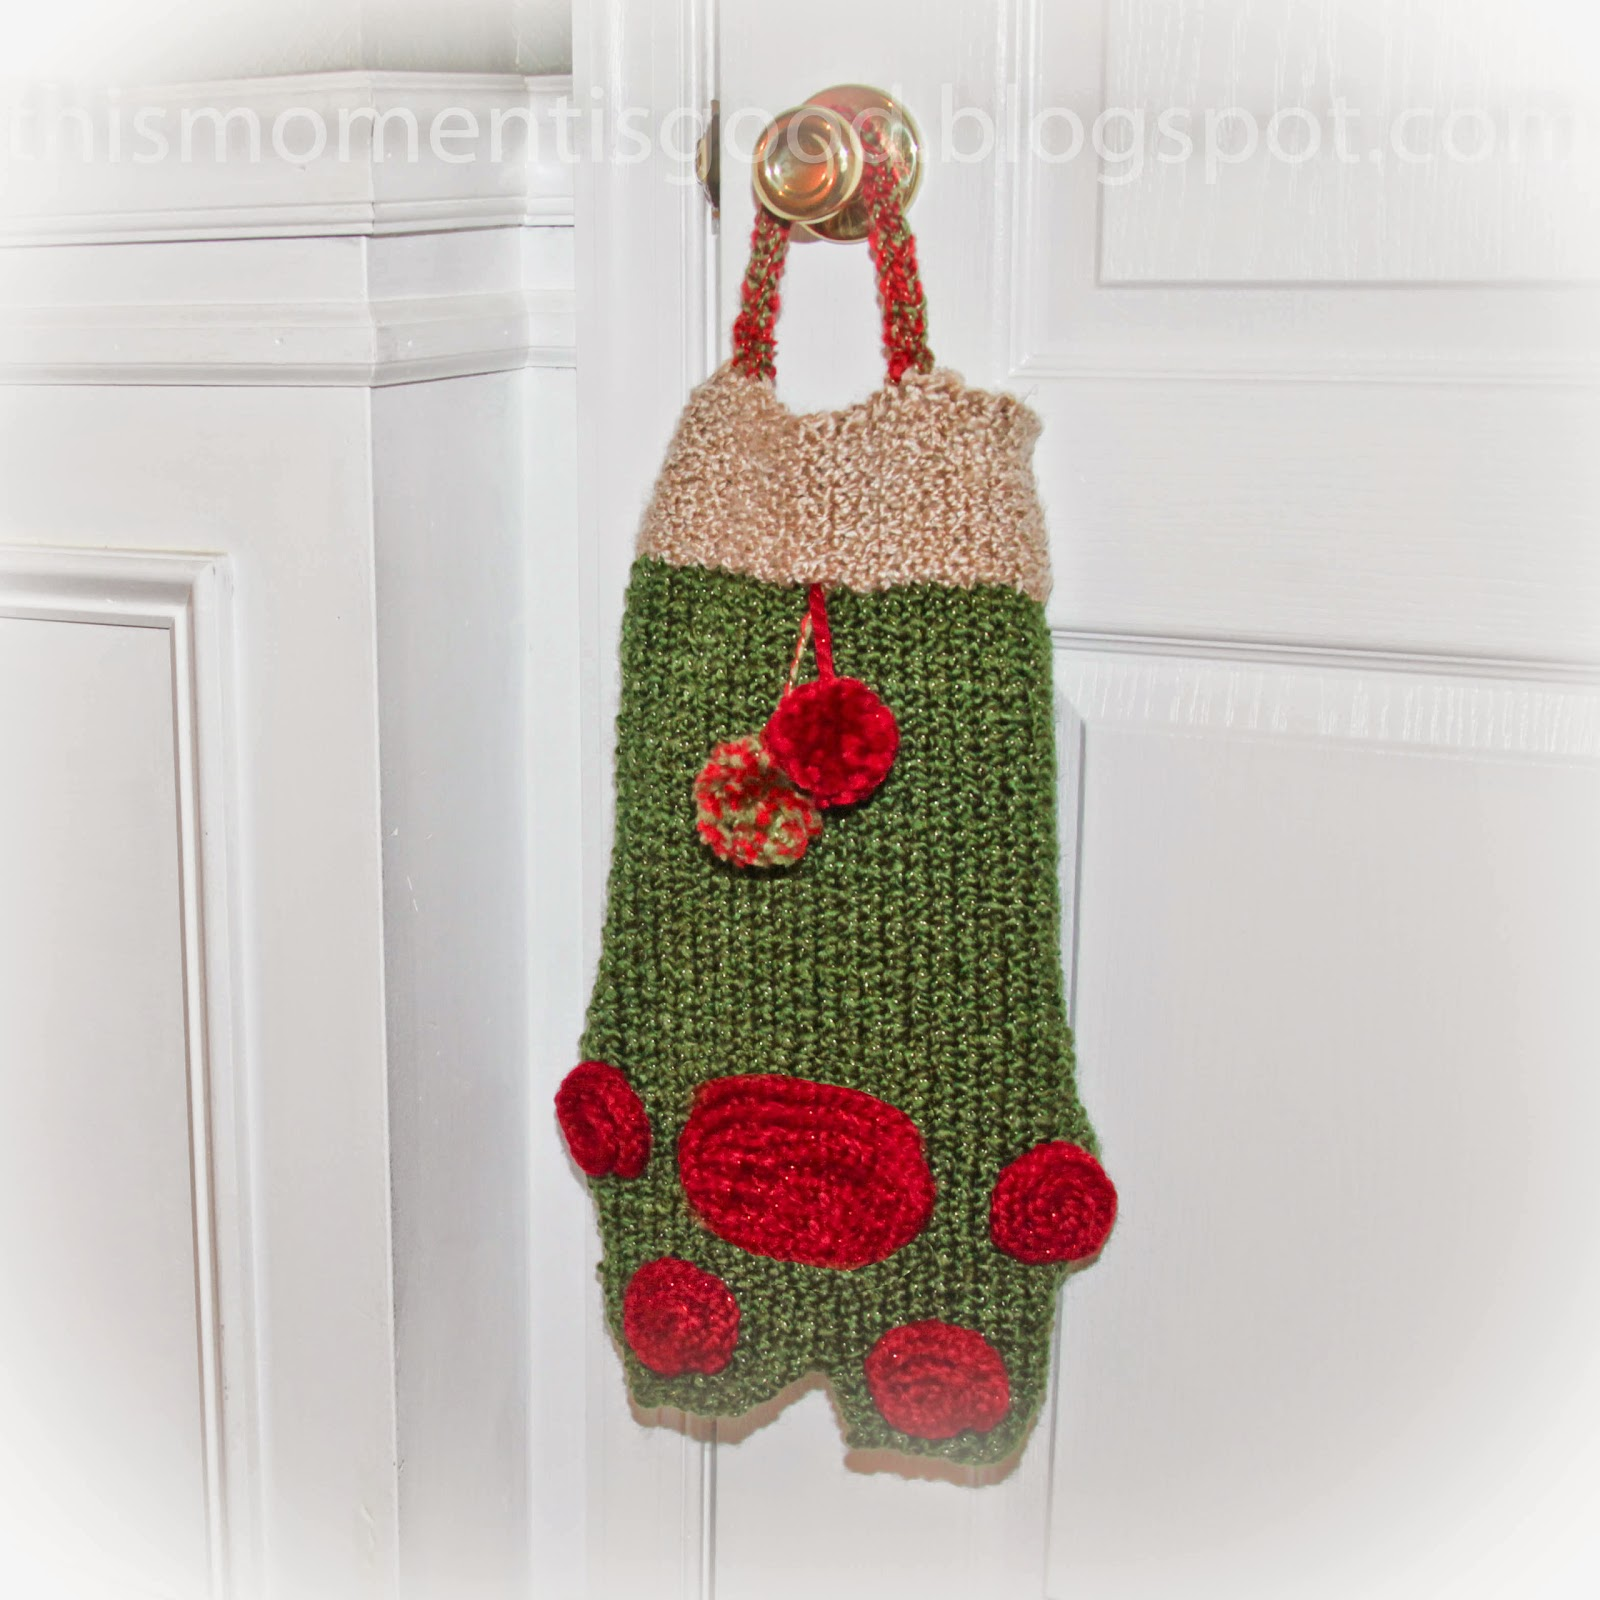 Knitting Pattern Child s Christmas Stocking : Loom Knitting by This Moment is Good!: LOOM KNIT PET STOCKING PATTERN...